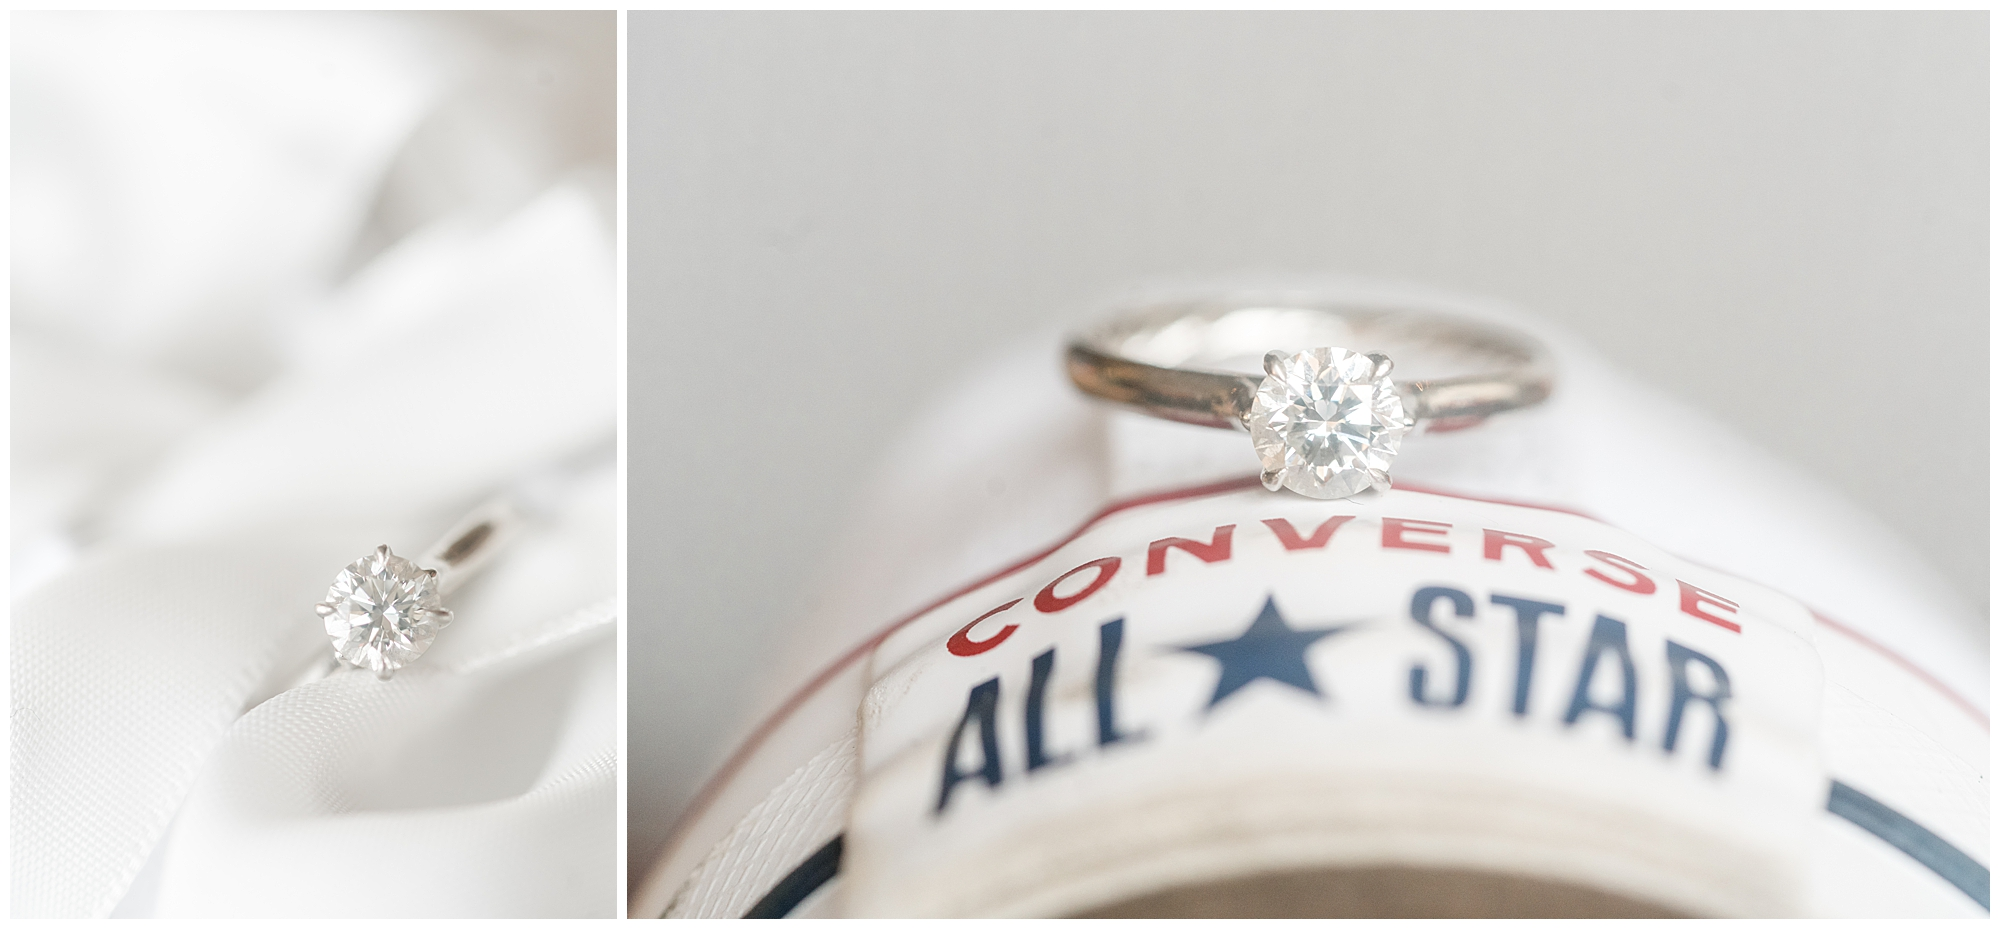 A David Yurman diamond engagement ring photographed against a white Converse sneaker